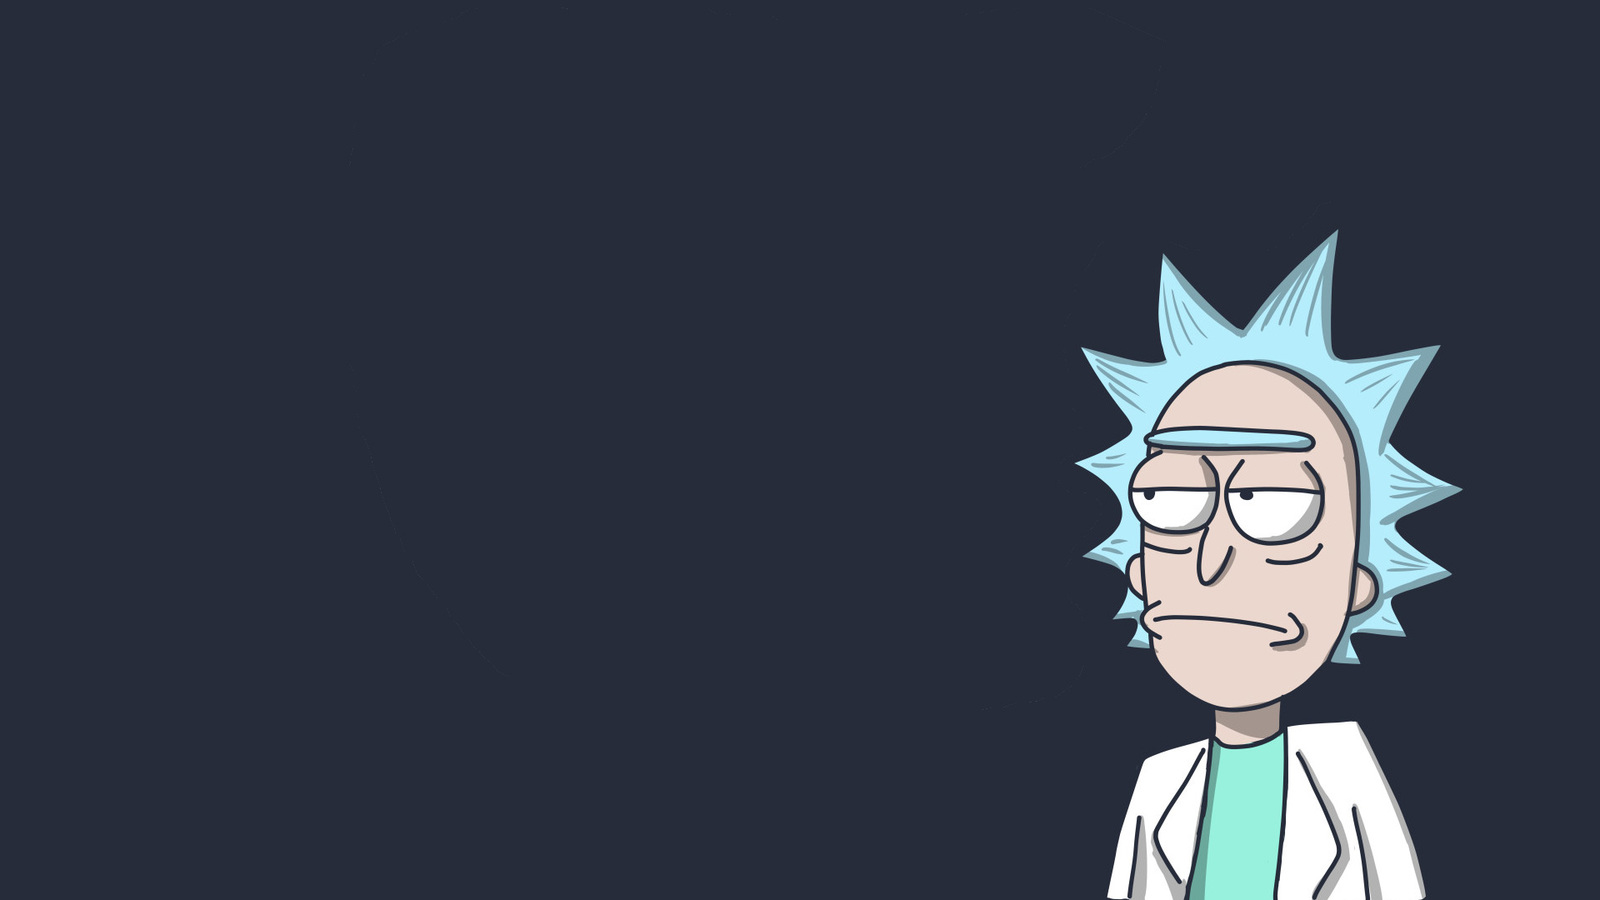 A new 'Rick and Morty' promo is out, and it might have secret messages